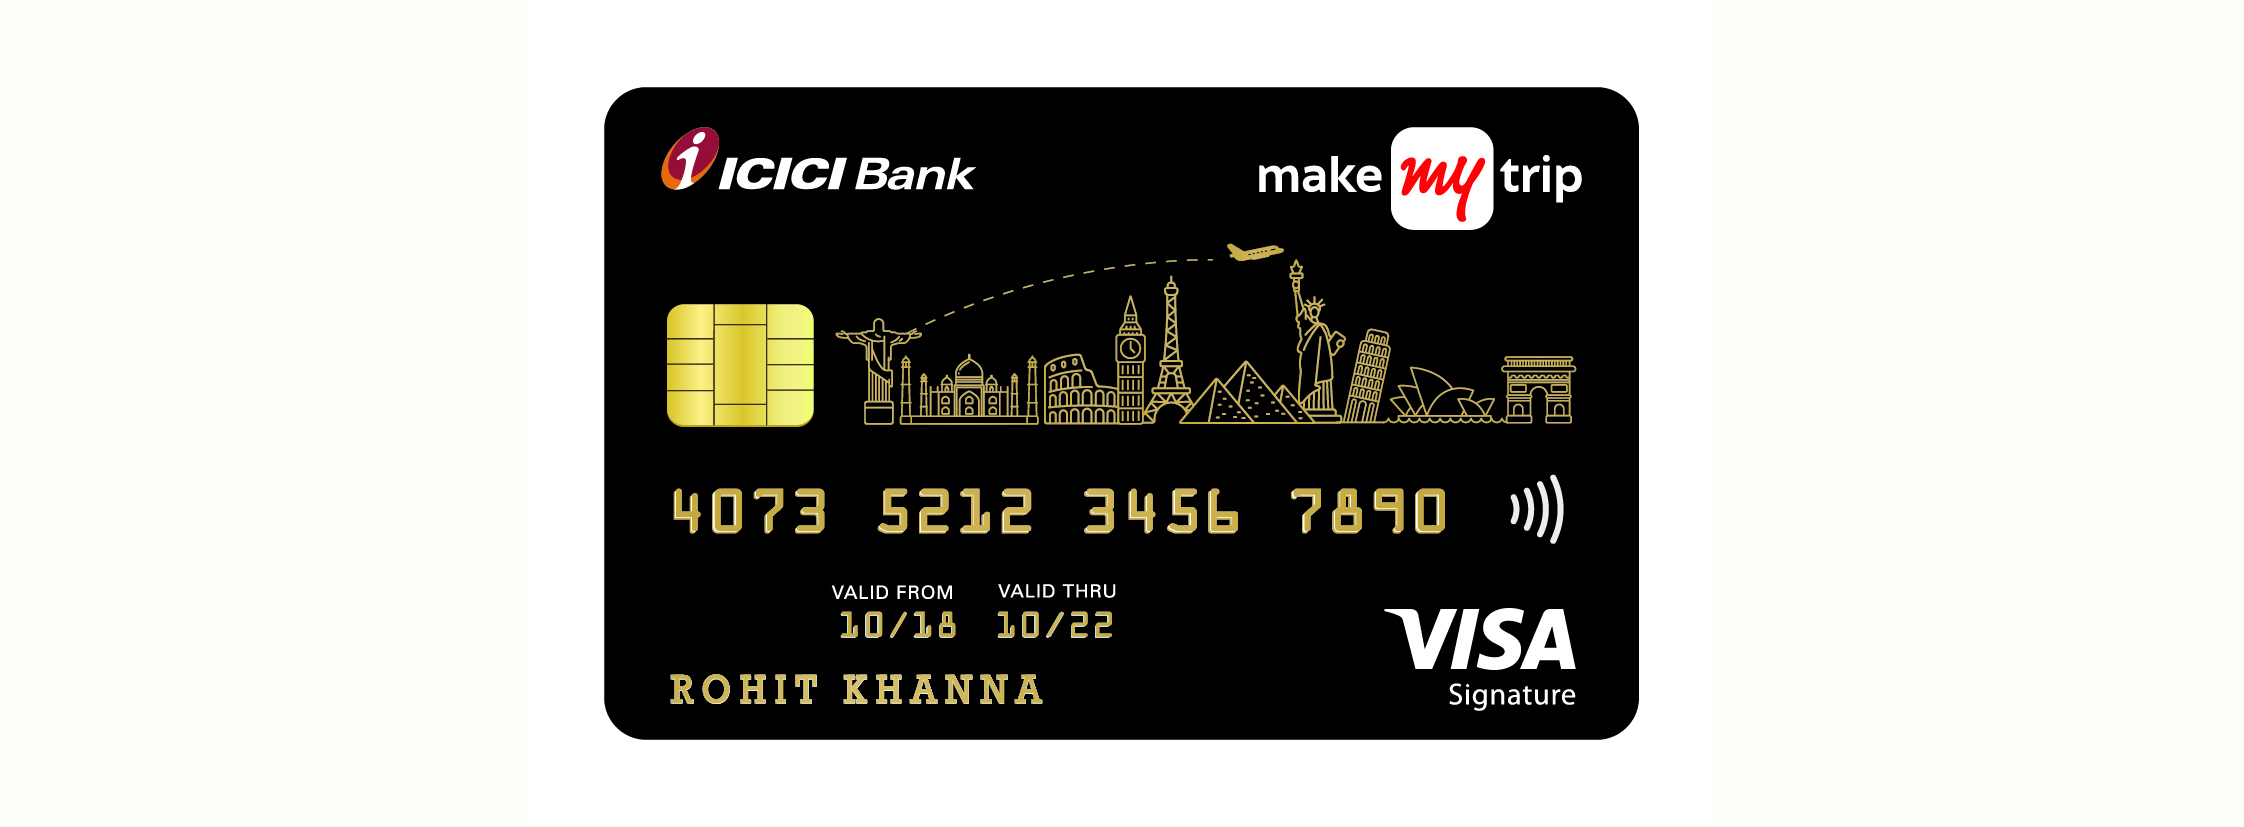 ICICI Bank ties-up with MakeMyTripICICI Bank ties-up with MakeMyTrip -  TnhGlobal